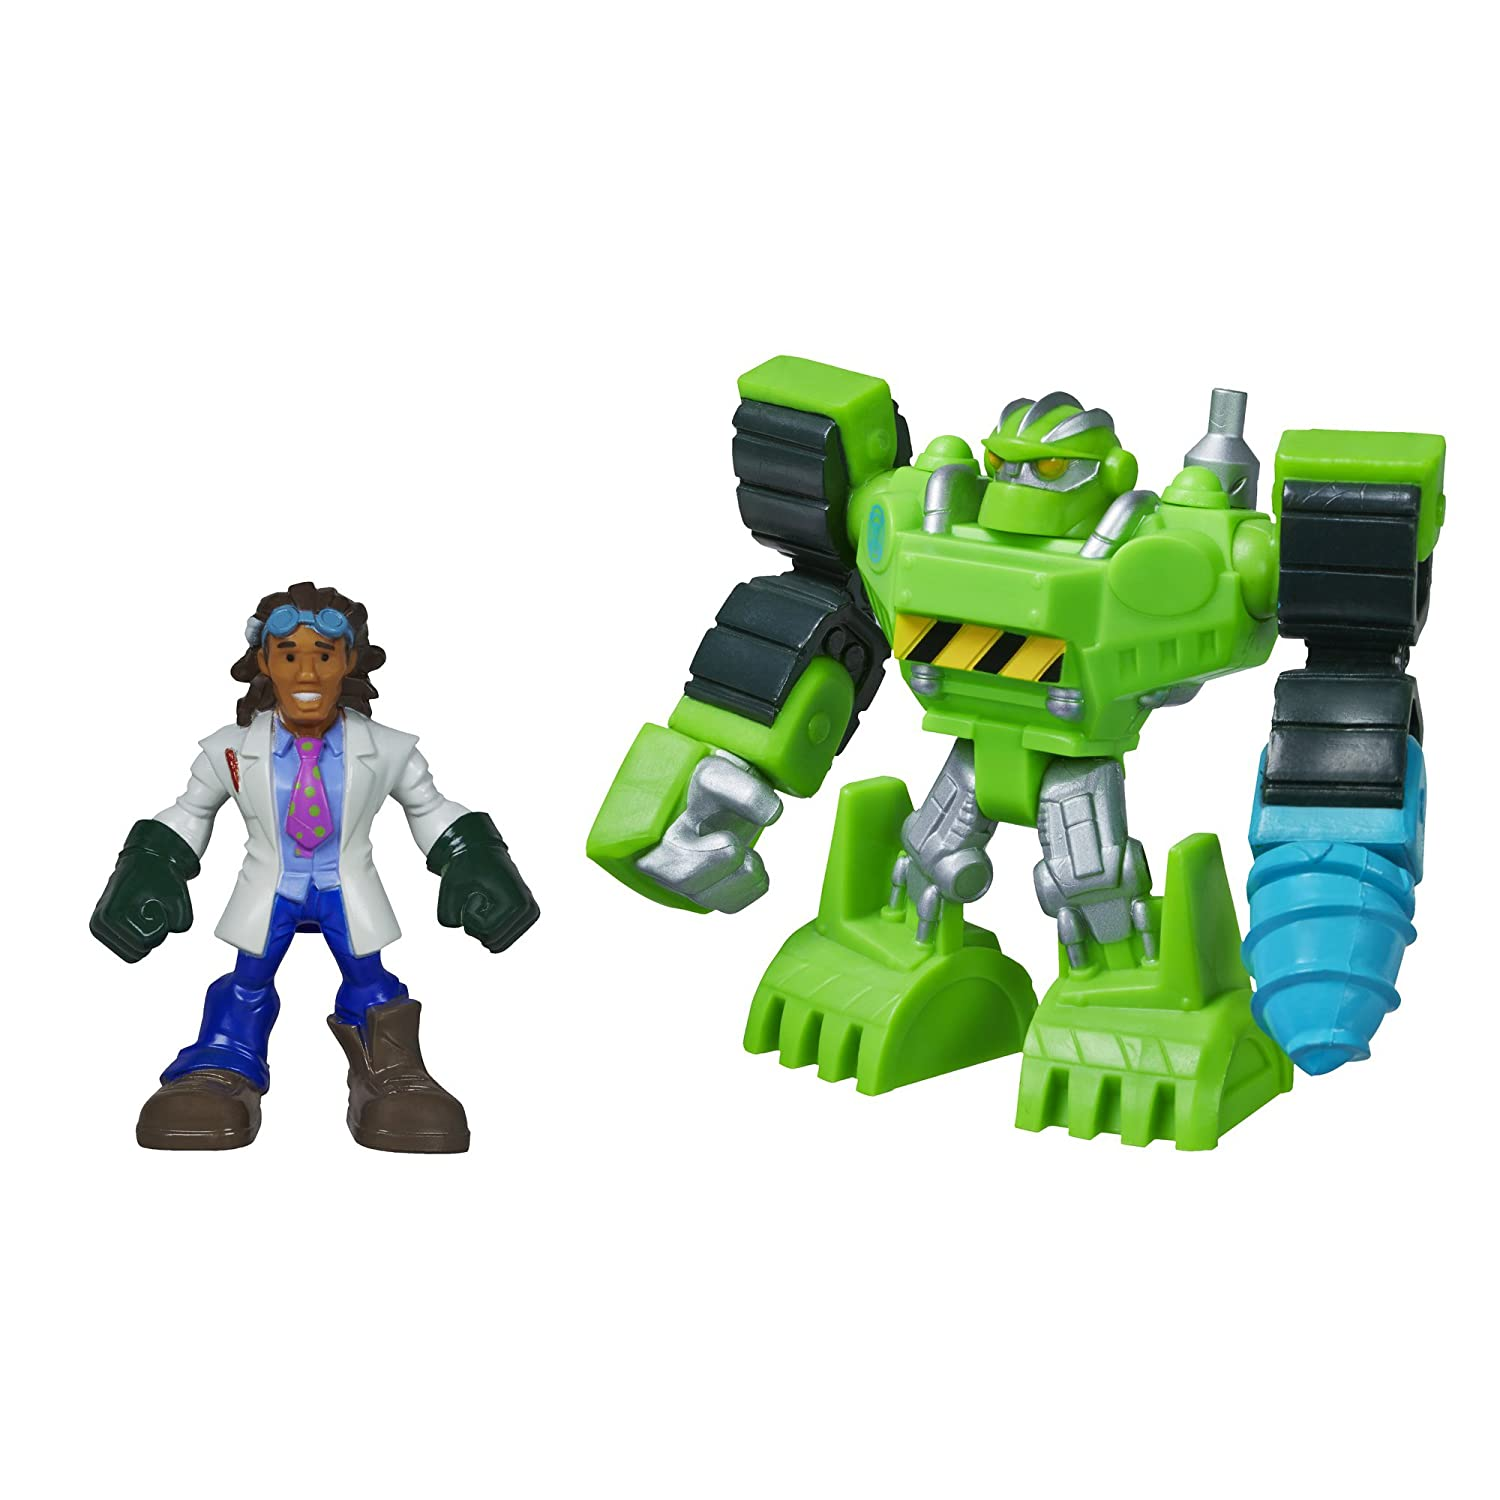 Playskool Heroes Boulder The Construction Bot And Doc Green: Amazon.co.uk:  Toys U0026 Games